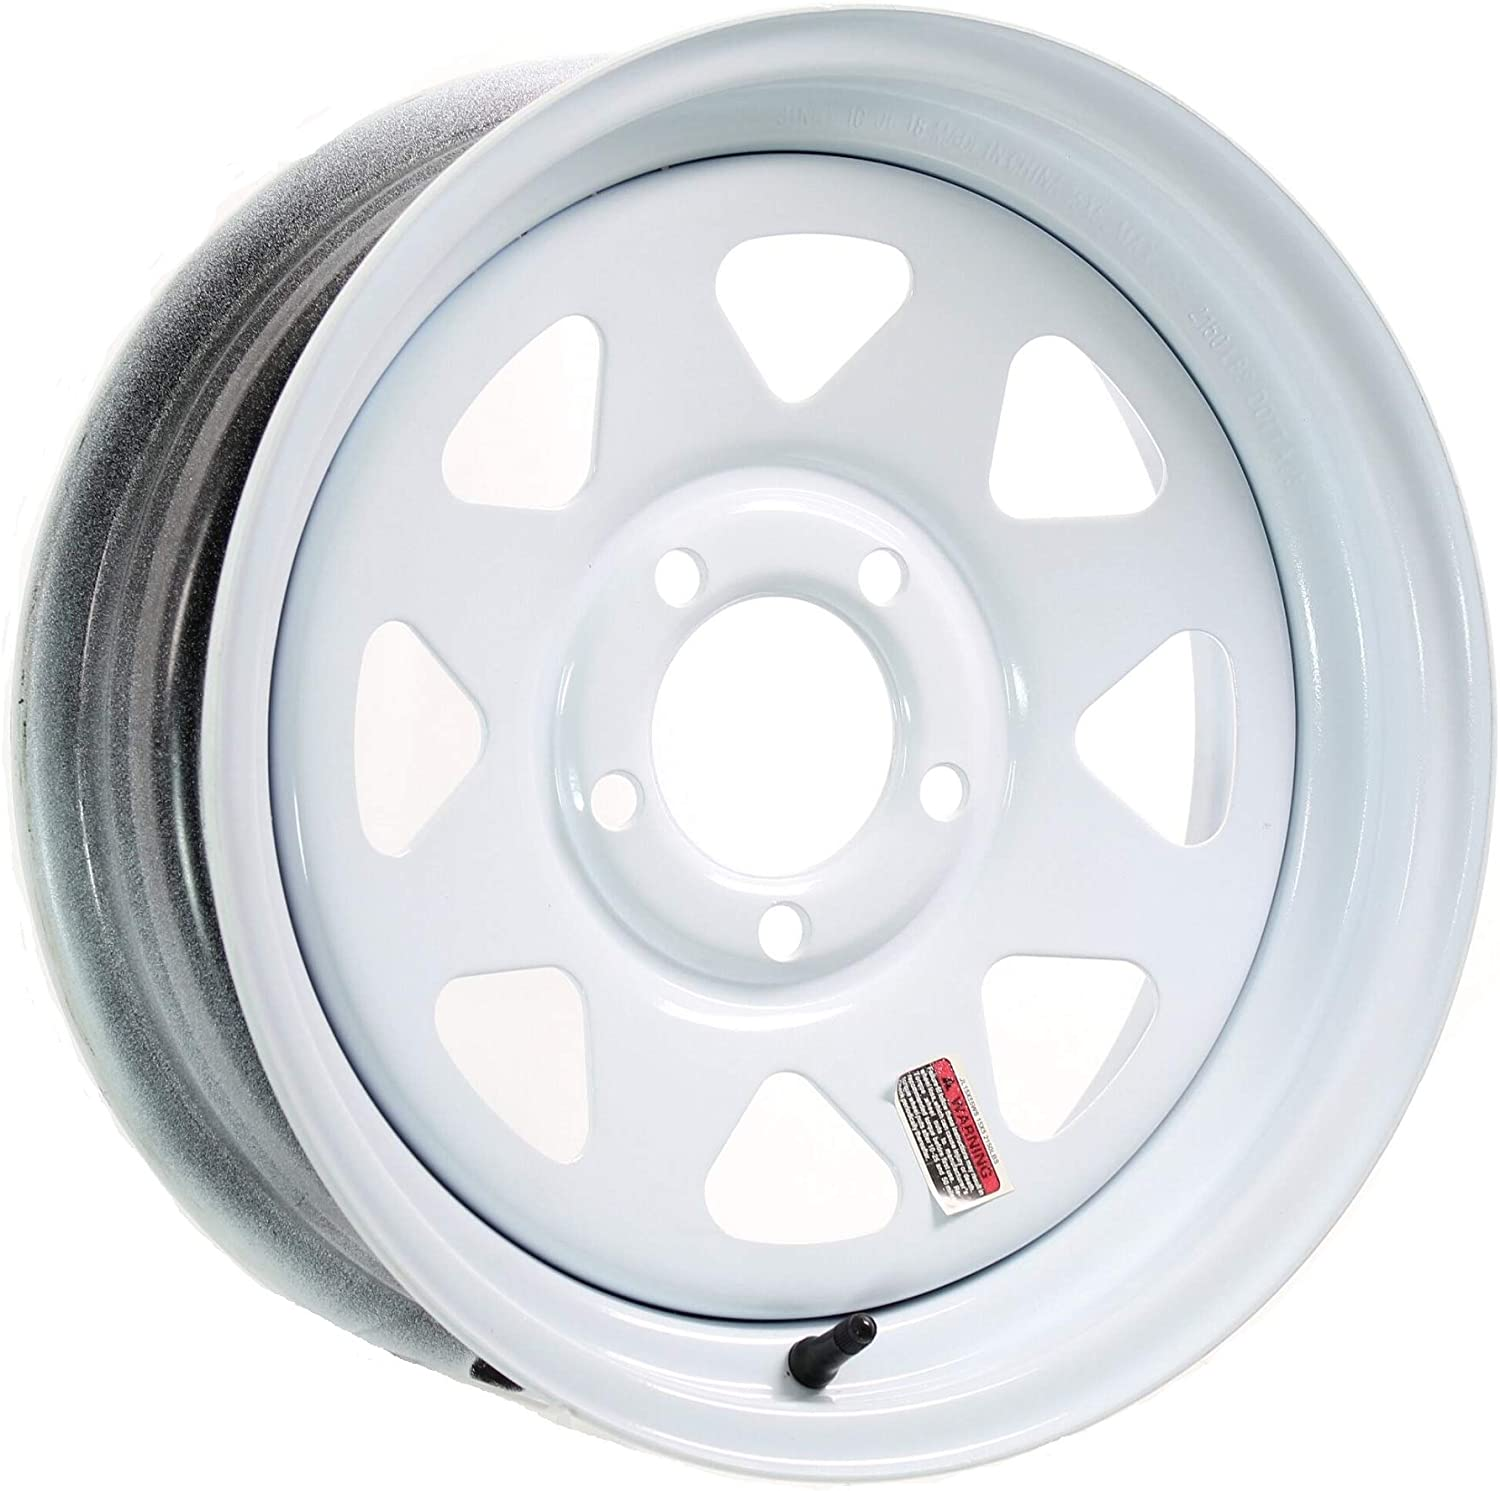 2-Pack Trailer Rim Wheel 14X5.5 J 5-4.5 White Spoke 2200 Lb 3.19 CB 75PSI